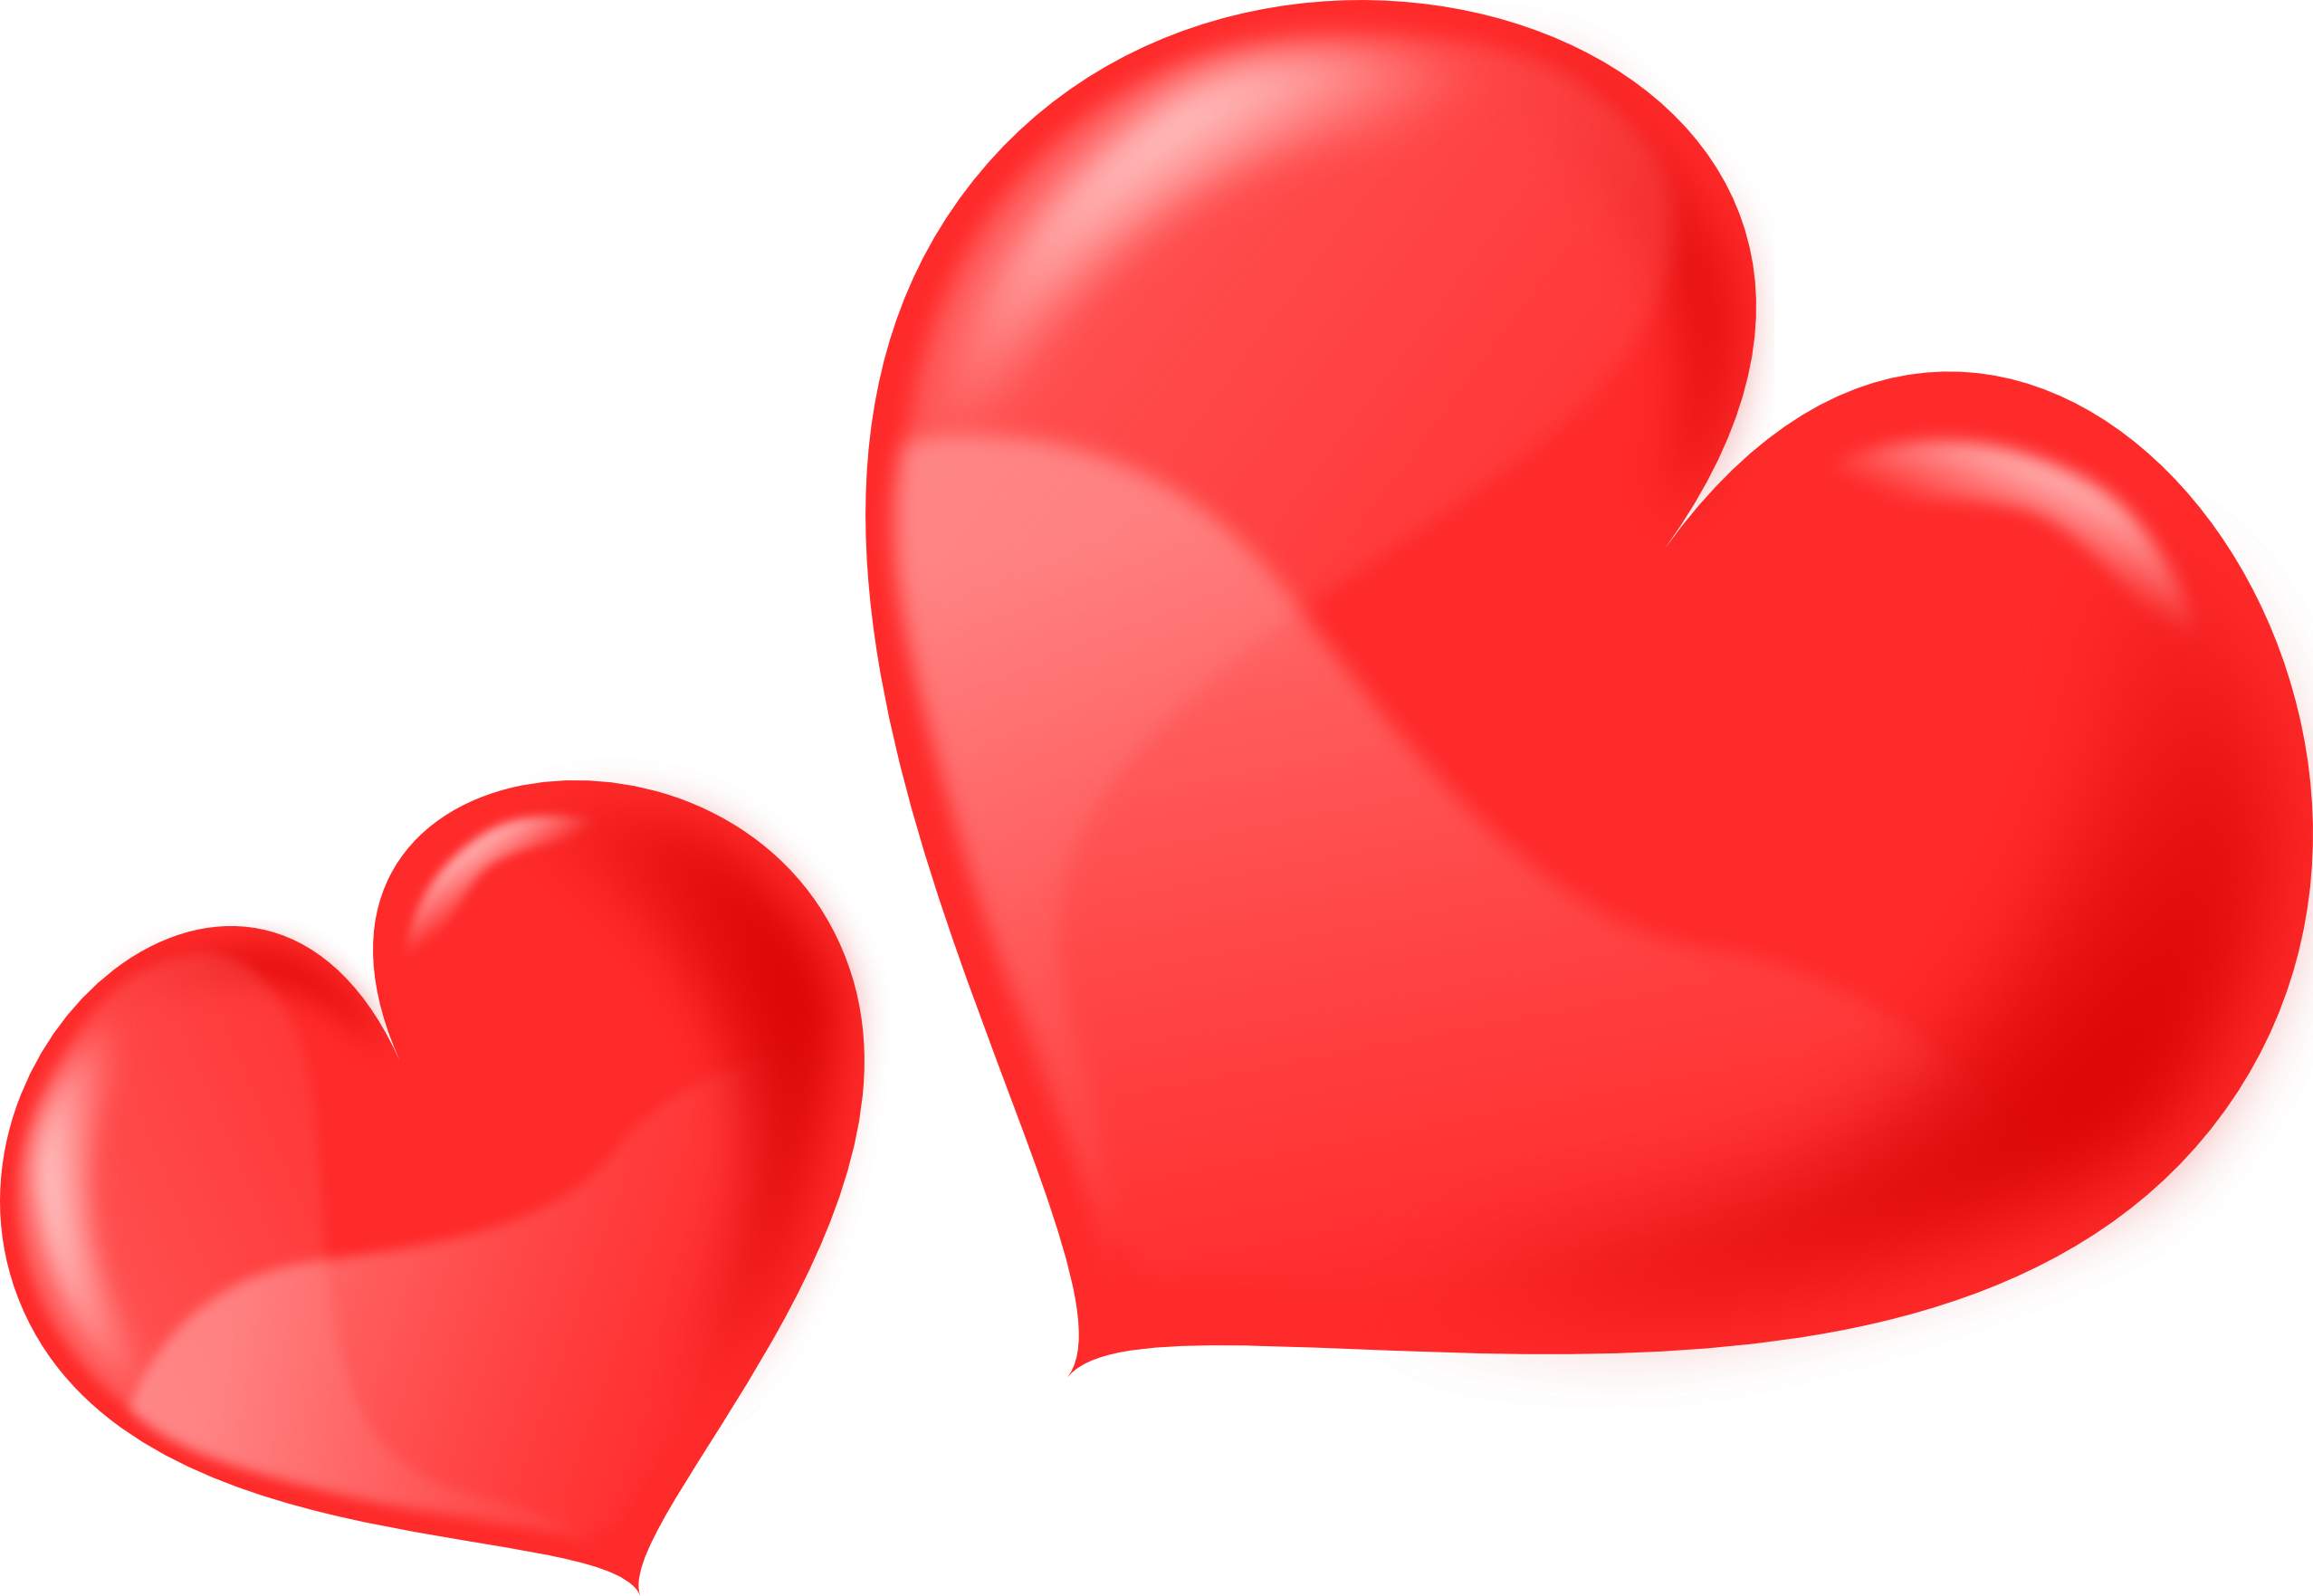 heart png cute - Heart PNG